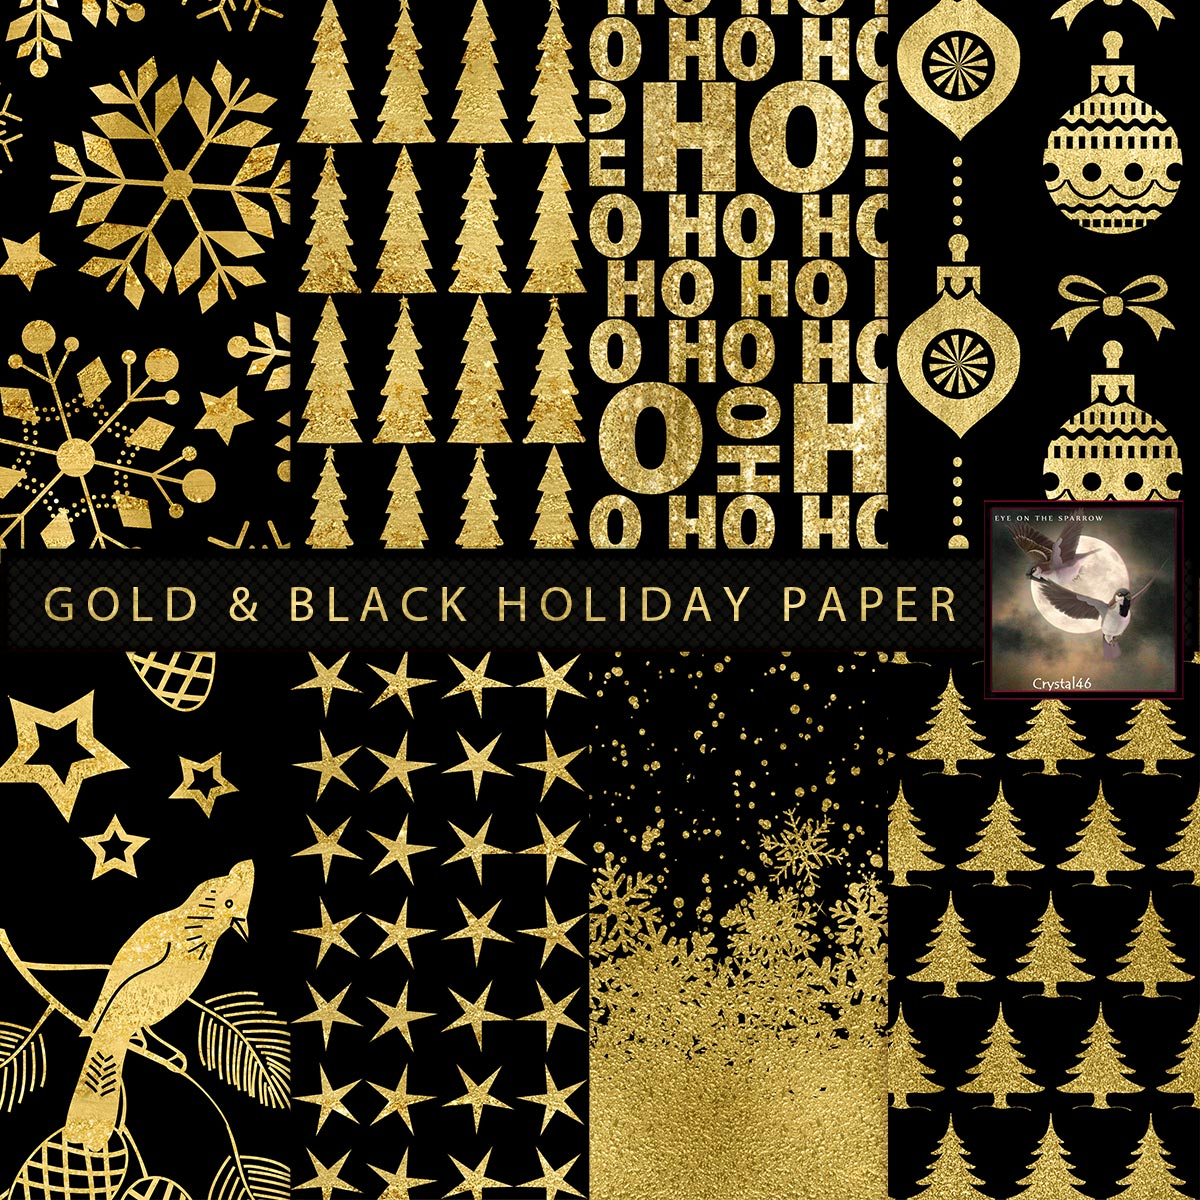 Black Gold Holiday Paper 2D Graphics Crystal46